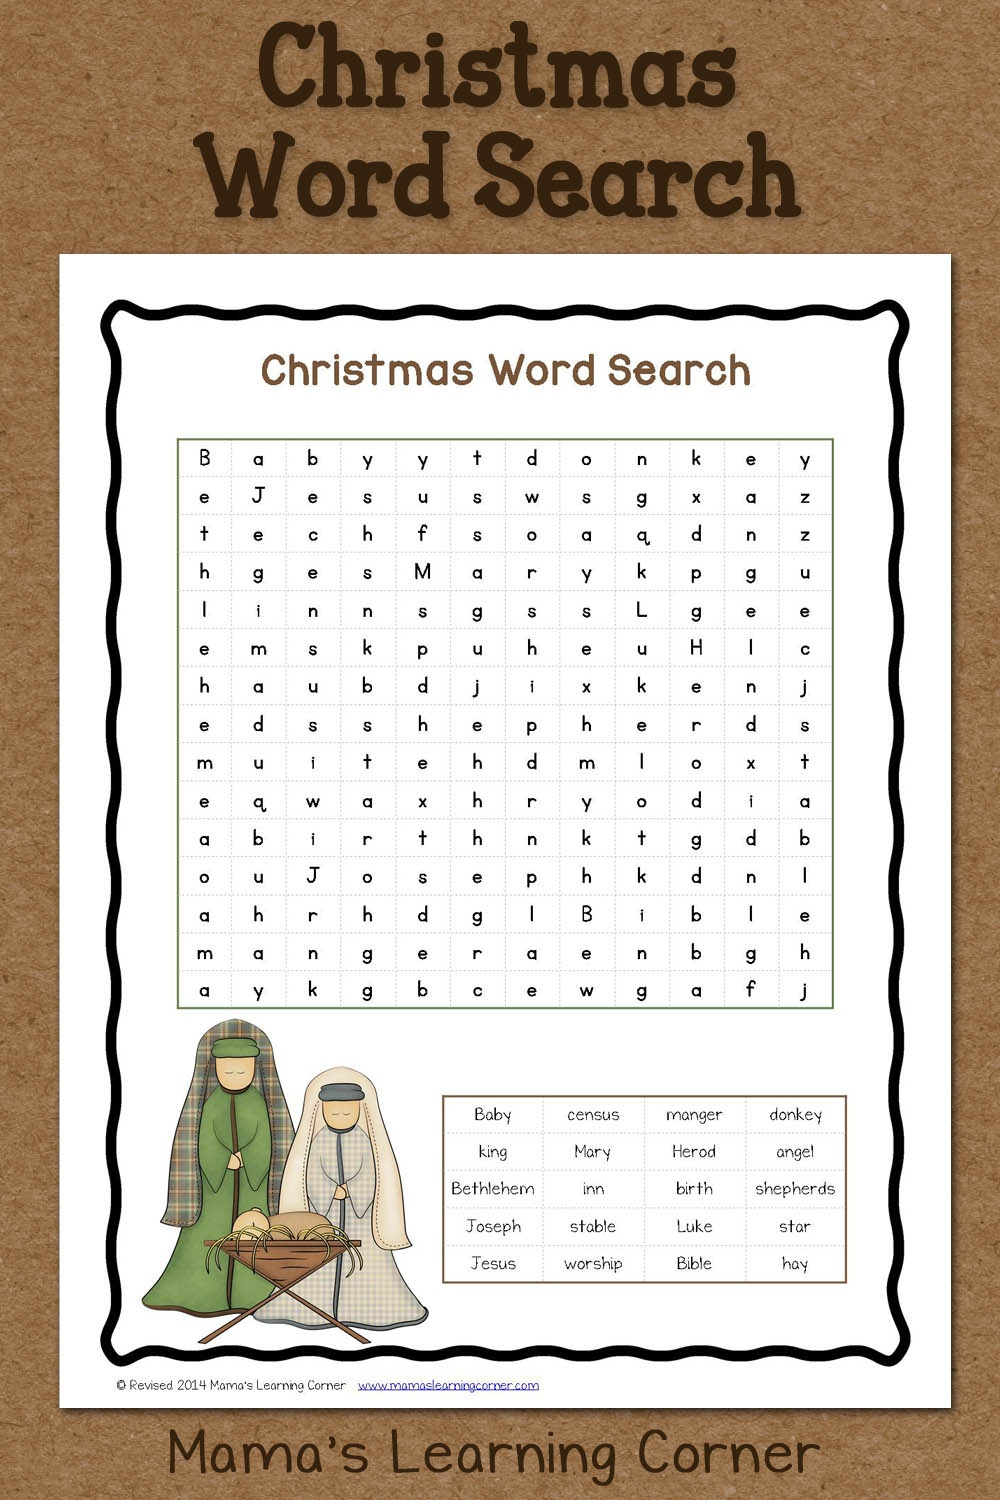 Christmas Word Search: Free Printable - Mamas Learning Corner - Free Printable Christmas Puzzles Word Searches